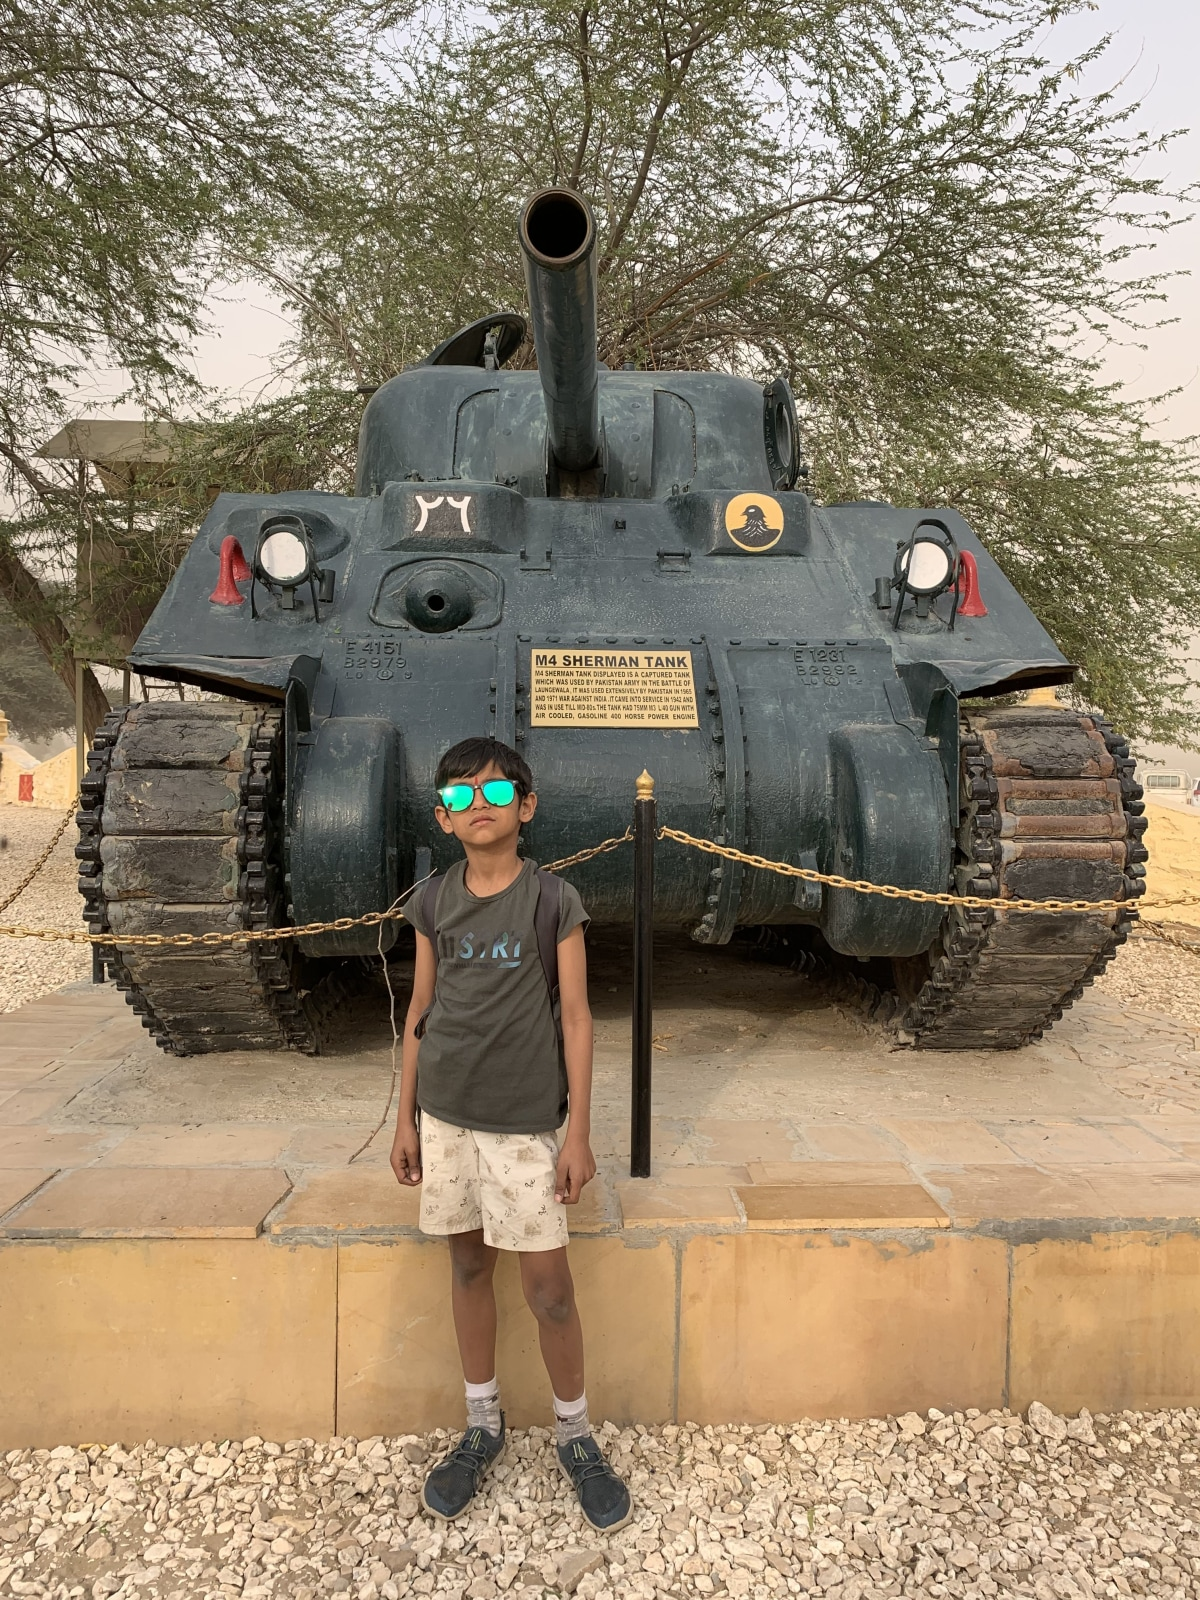 T-90 tank left by Pakistani army defeated by Indian army